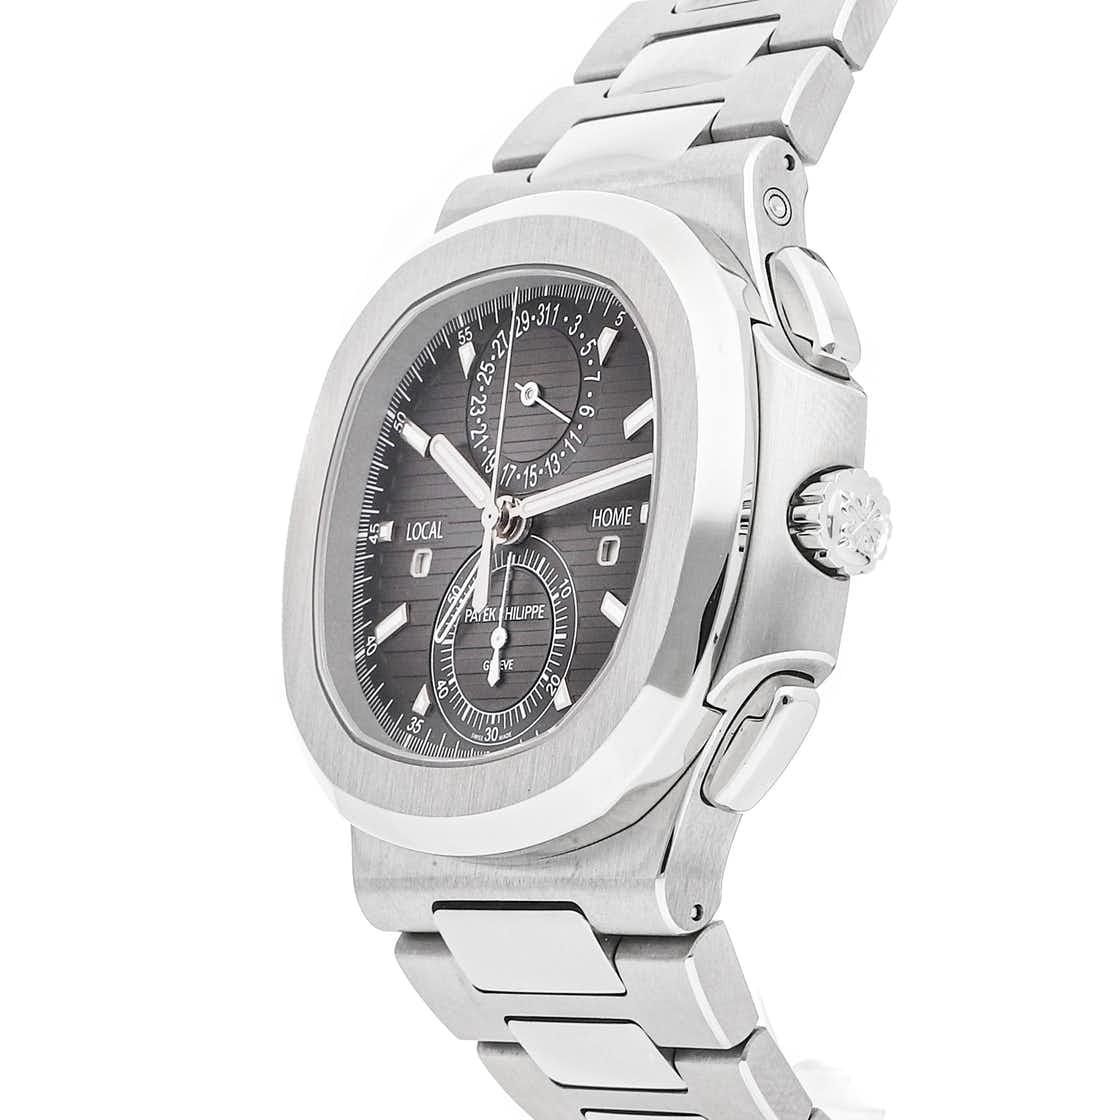 Patek Philippe Complications Nautilus Travel Time Chronograph 5990/1A-001